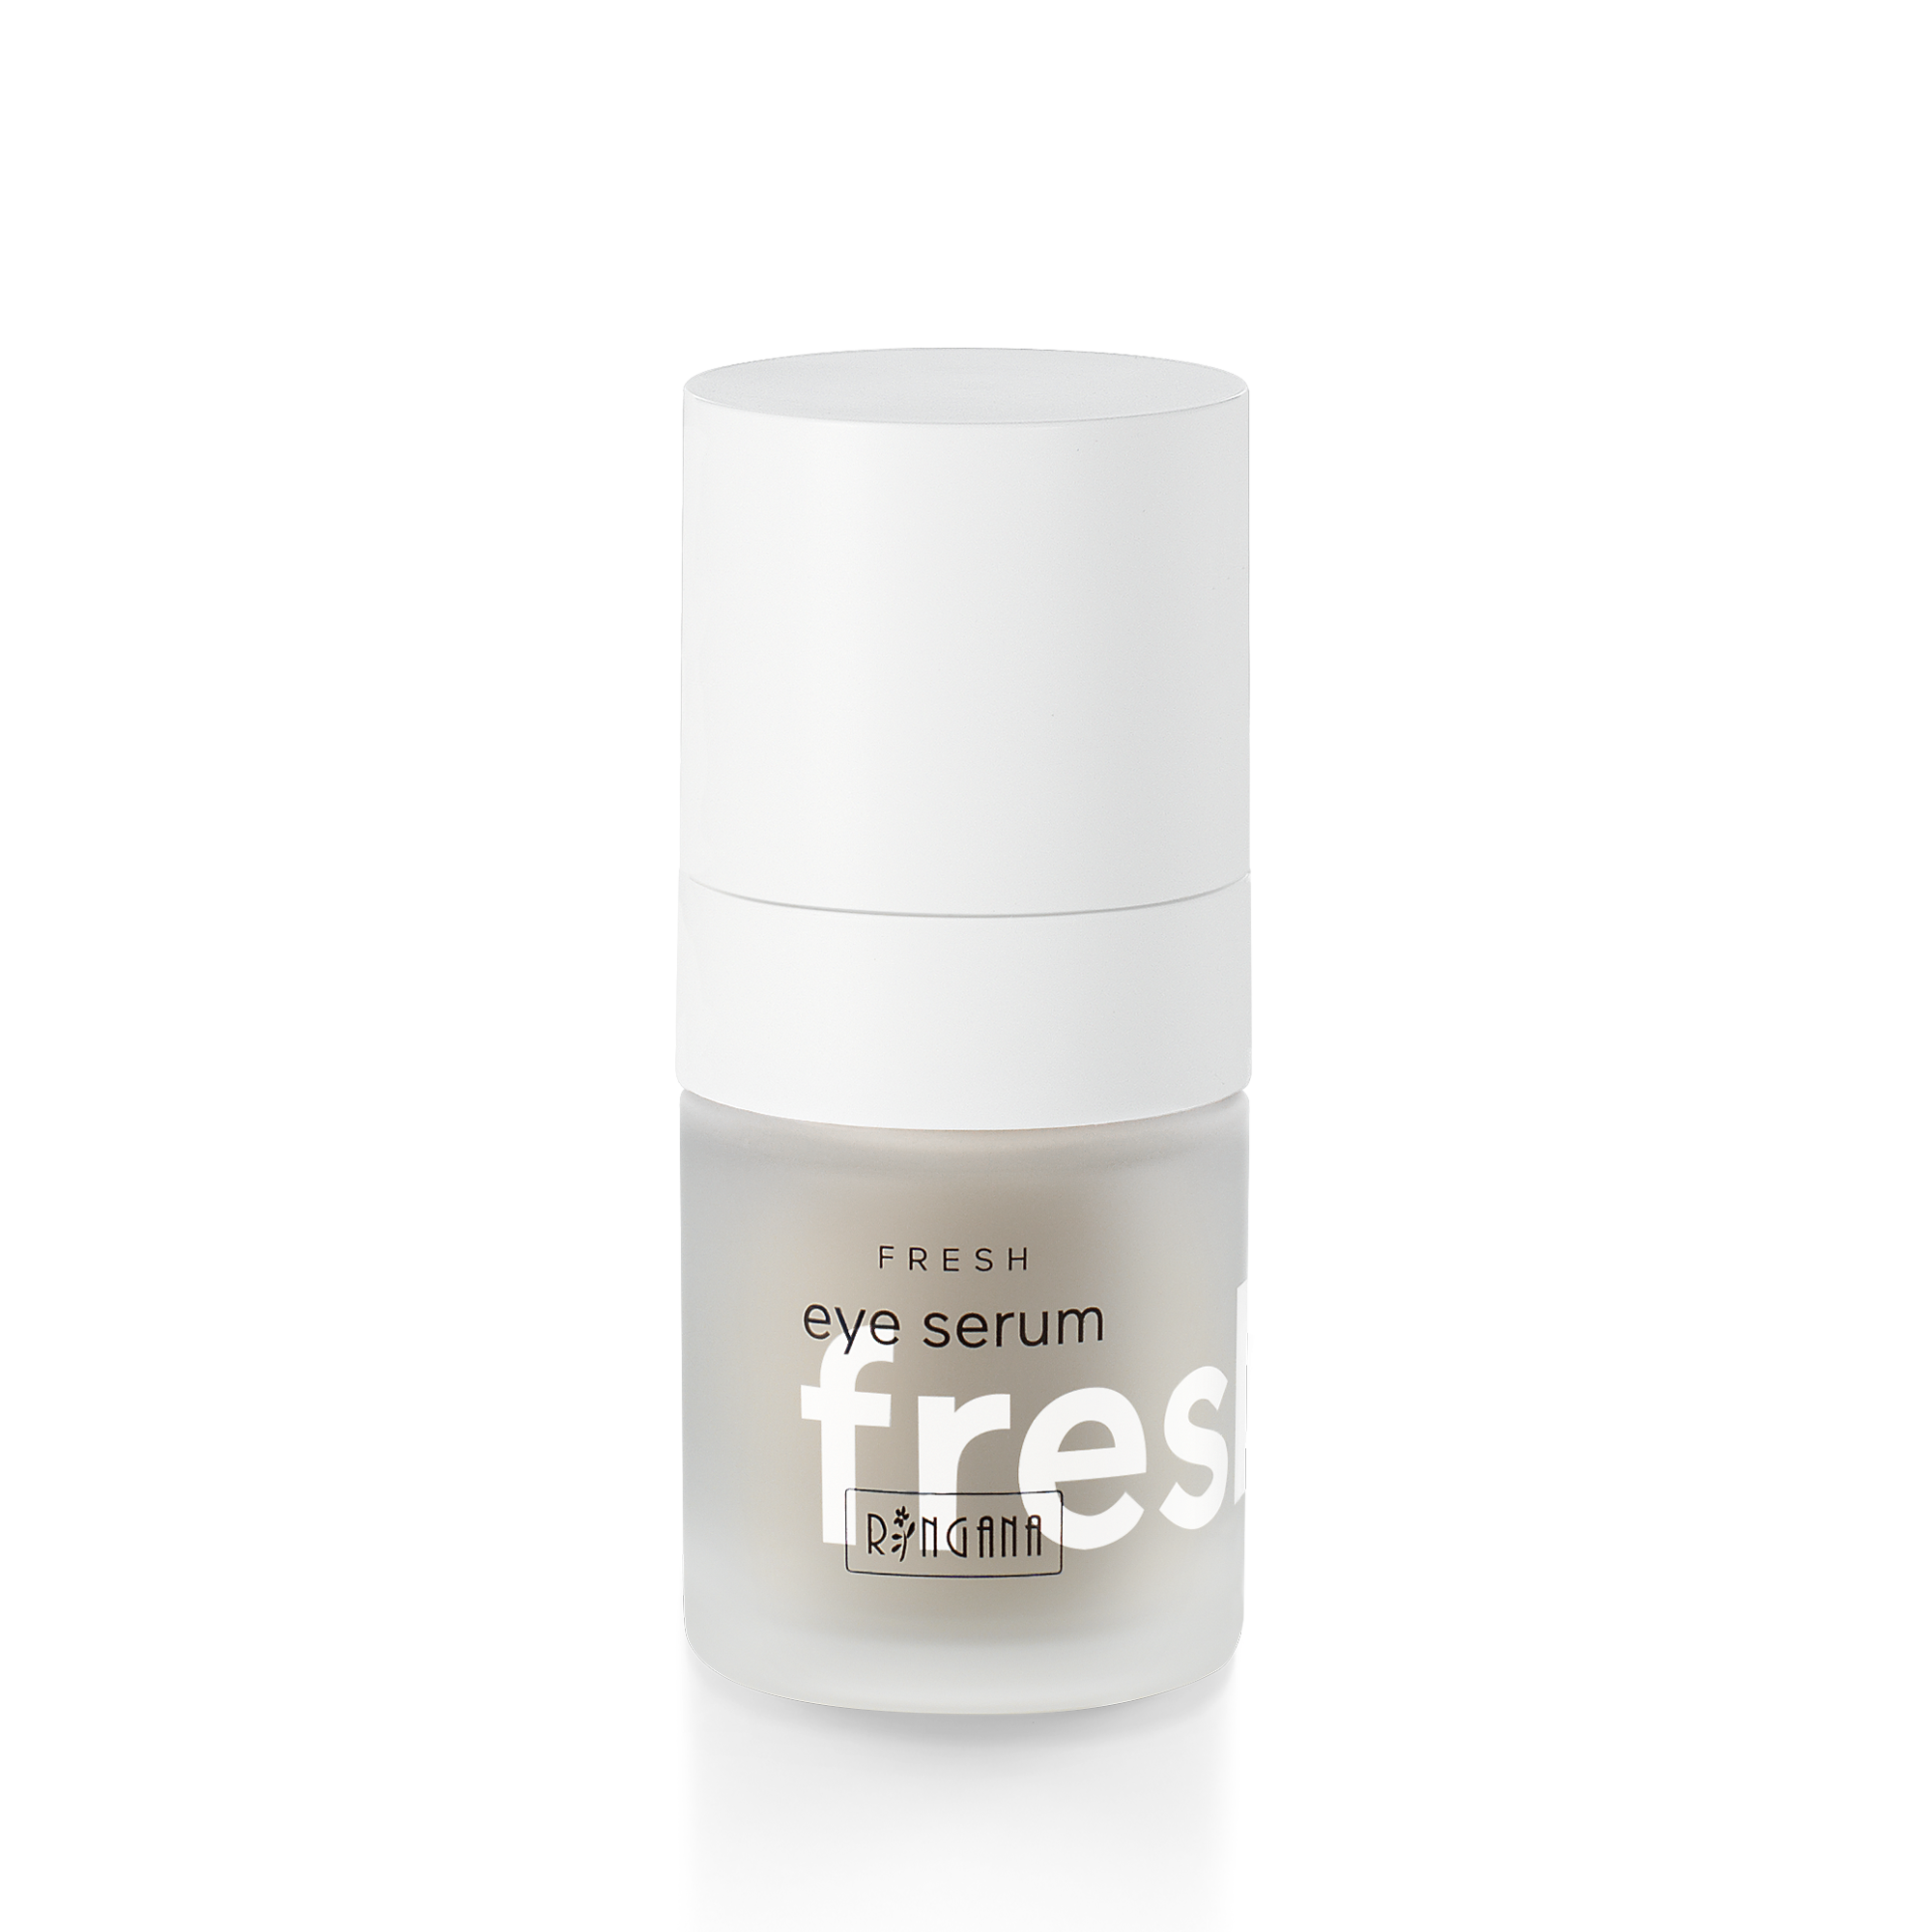 FRESH eye serum - Eye serum15 ml - € 39,10The skin around our eyes is particularly thin and sensitive. Swellings and dark circles often appear as signs of stress and tiredness. FRESH eye serum has an instant refreshing, firming effect and helps reduce swelling.